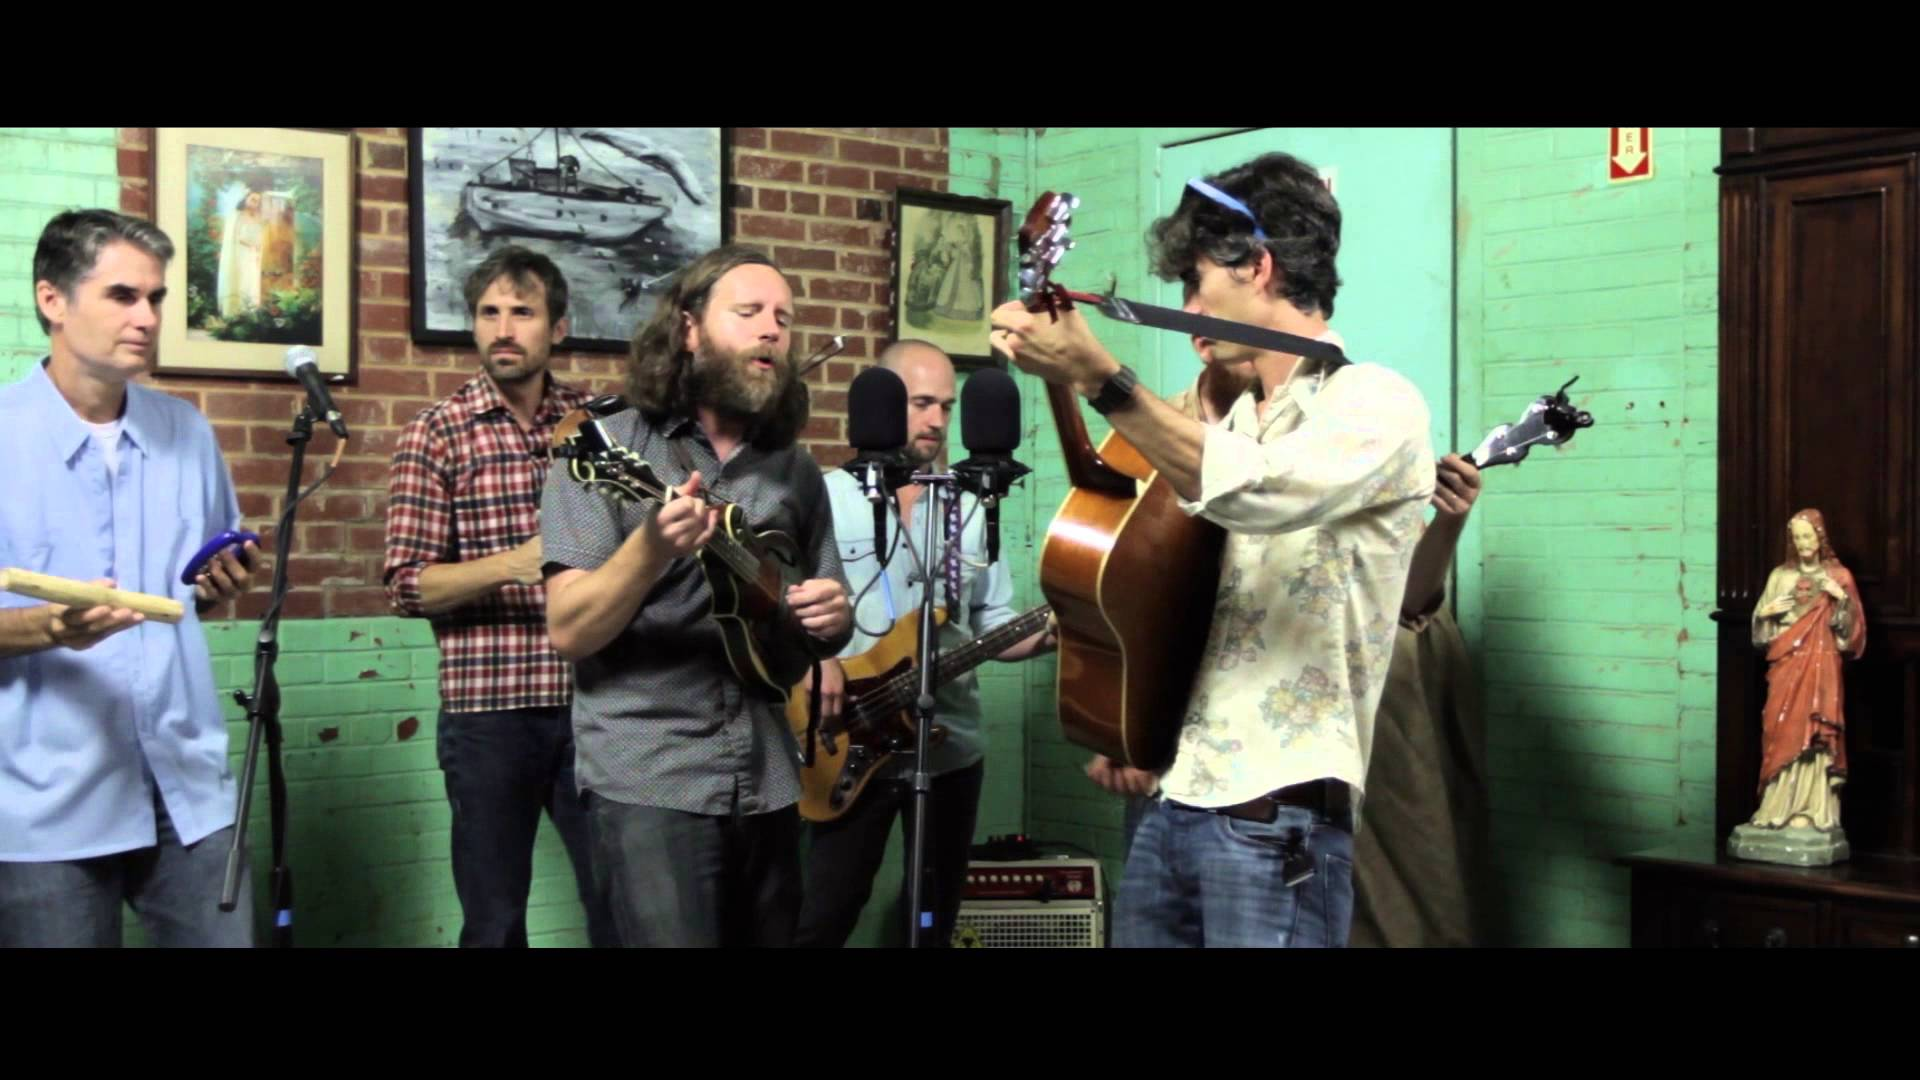 Packway Handle Band Tour